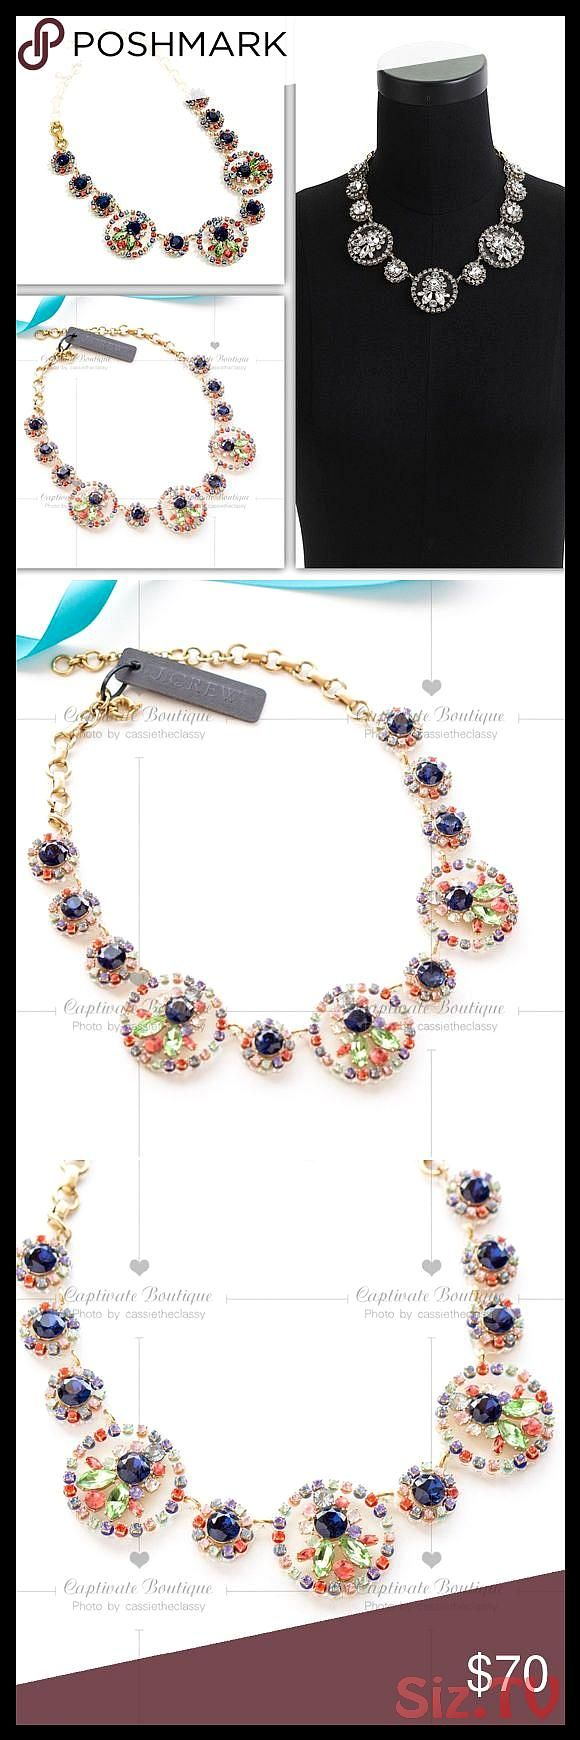 J CREW Crystal and Acetate Statement Necklace Brand new Made from translucent plastic studded with sparkly stones this necklace offers a very modeJ CREW Crystal and Aceta...